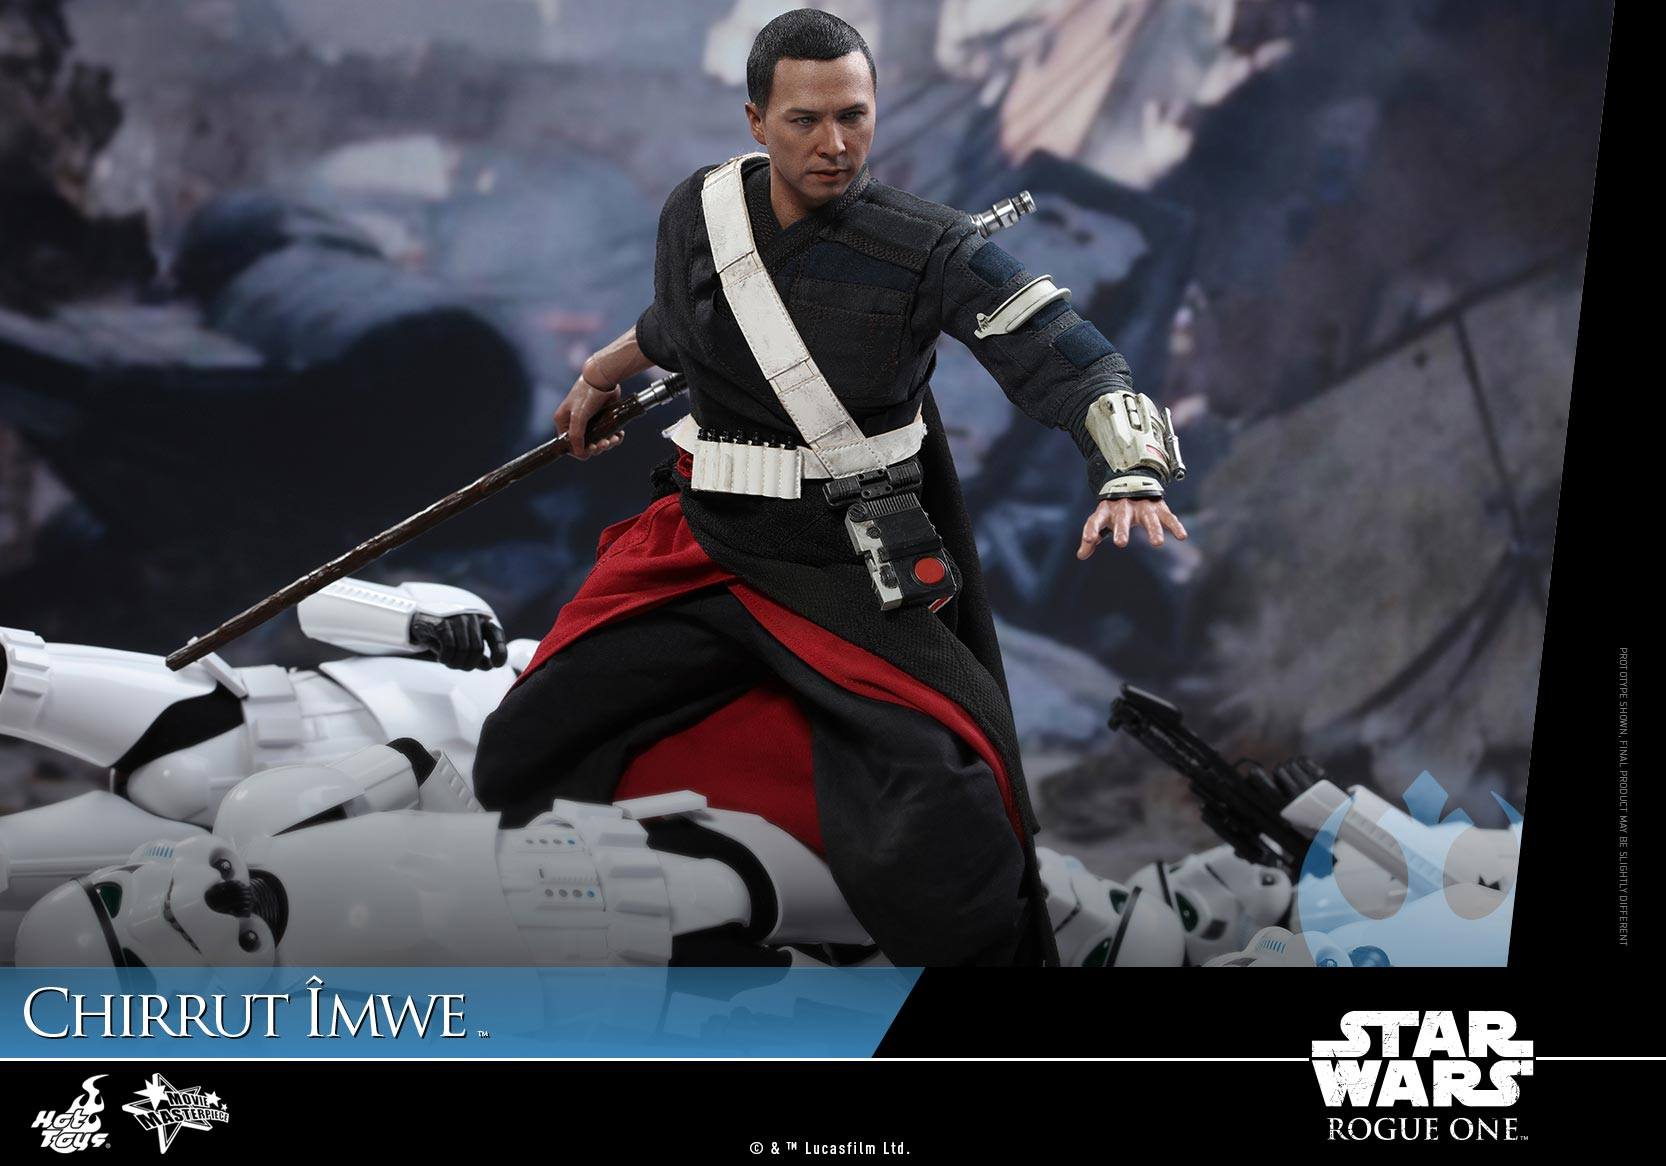 Rogue One Hot Toys Chirrut Imwe action figure